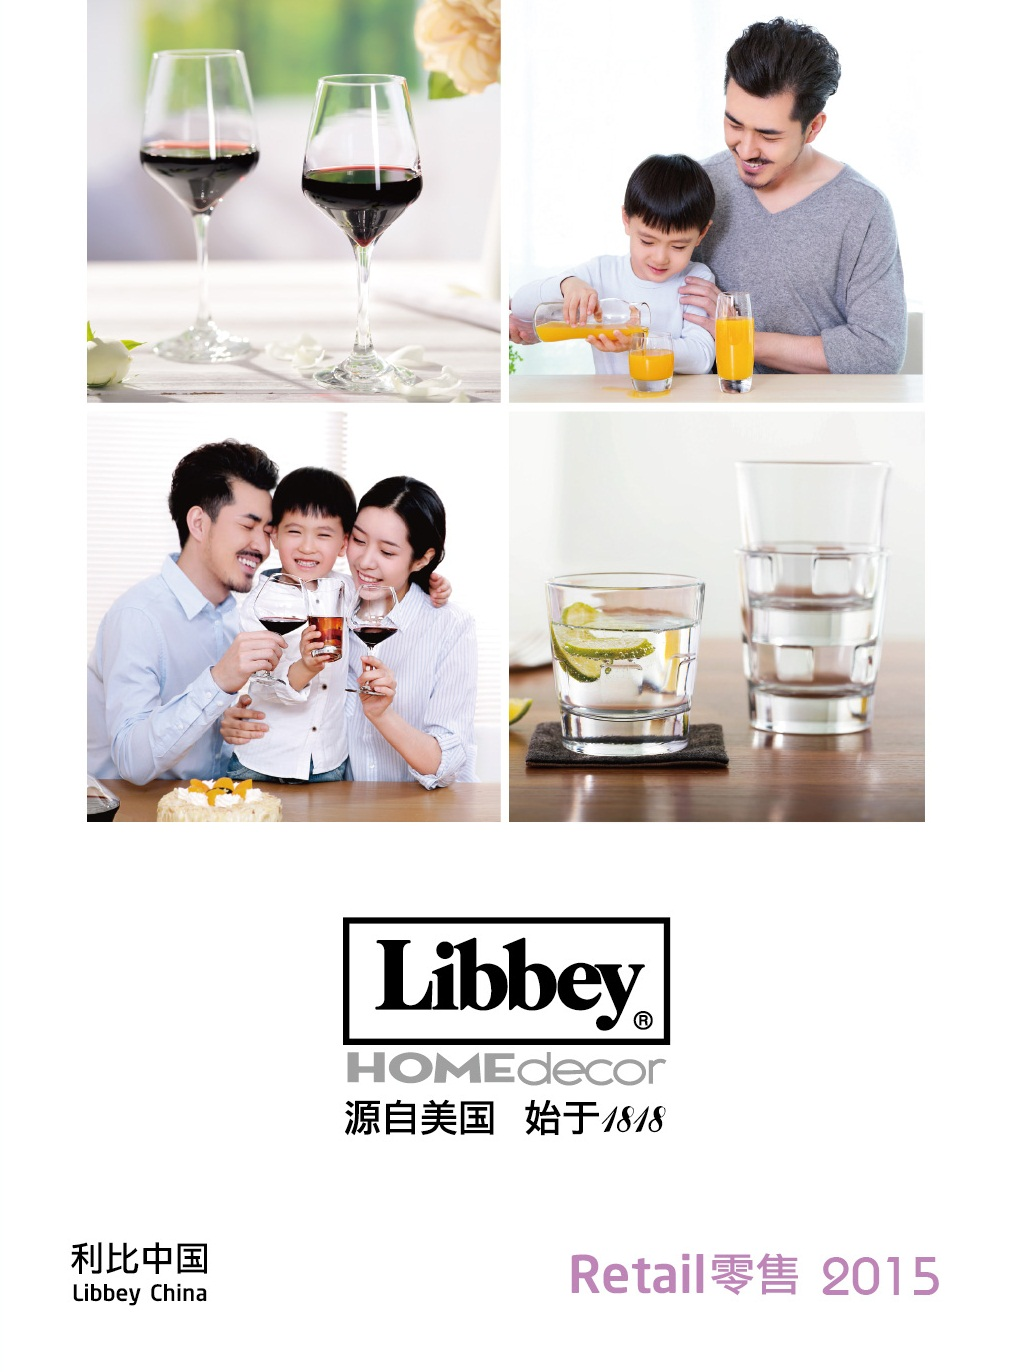 Libbey China Tablet Image